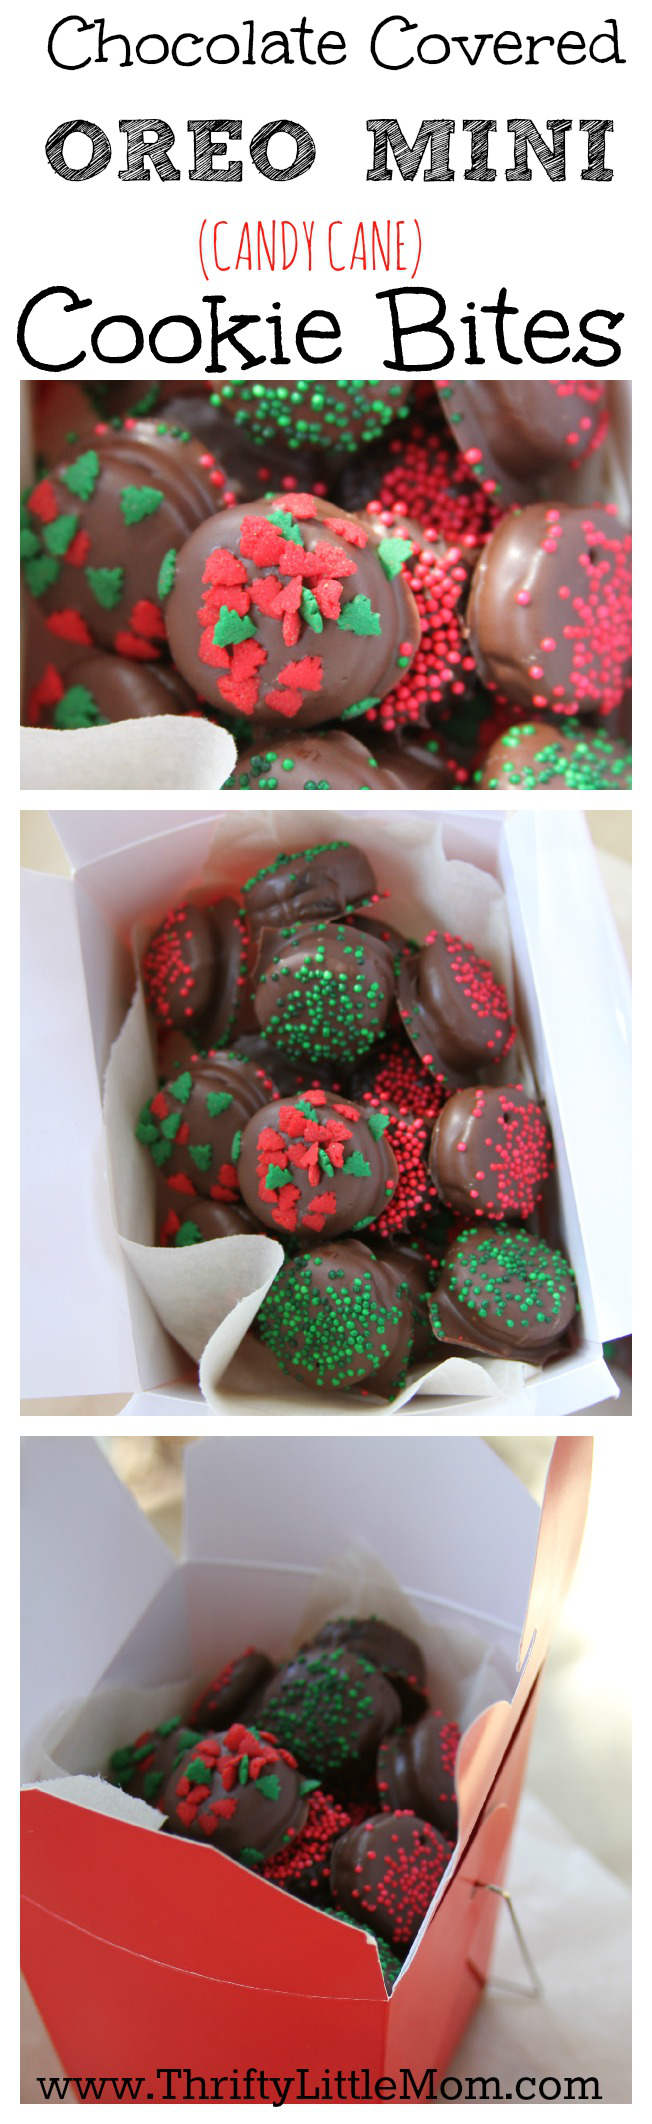 Chocolate Covered OREO mini cookie bites. Make these sweet bite size delights with your kids this holiday season. Chocolate provided by Chocoley.